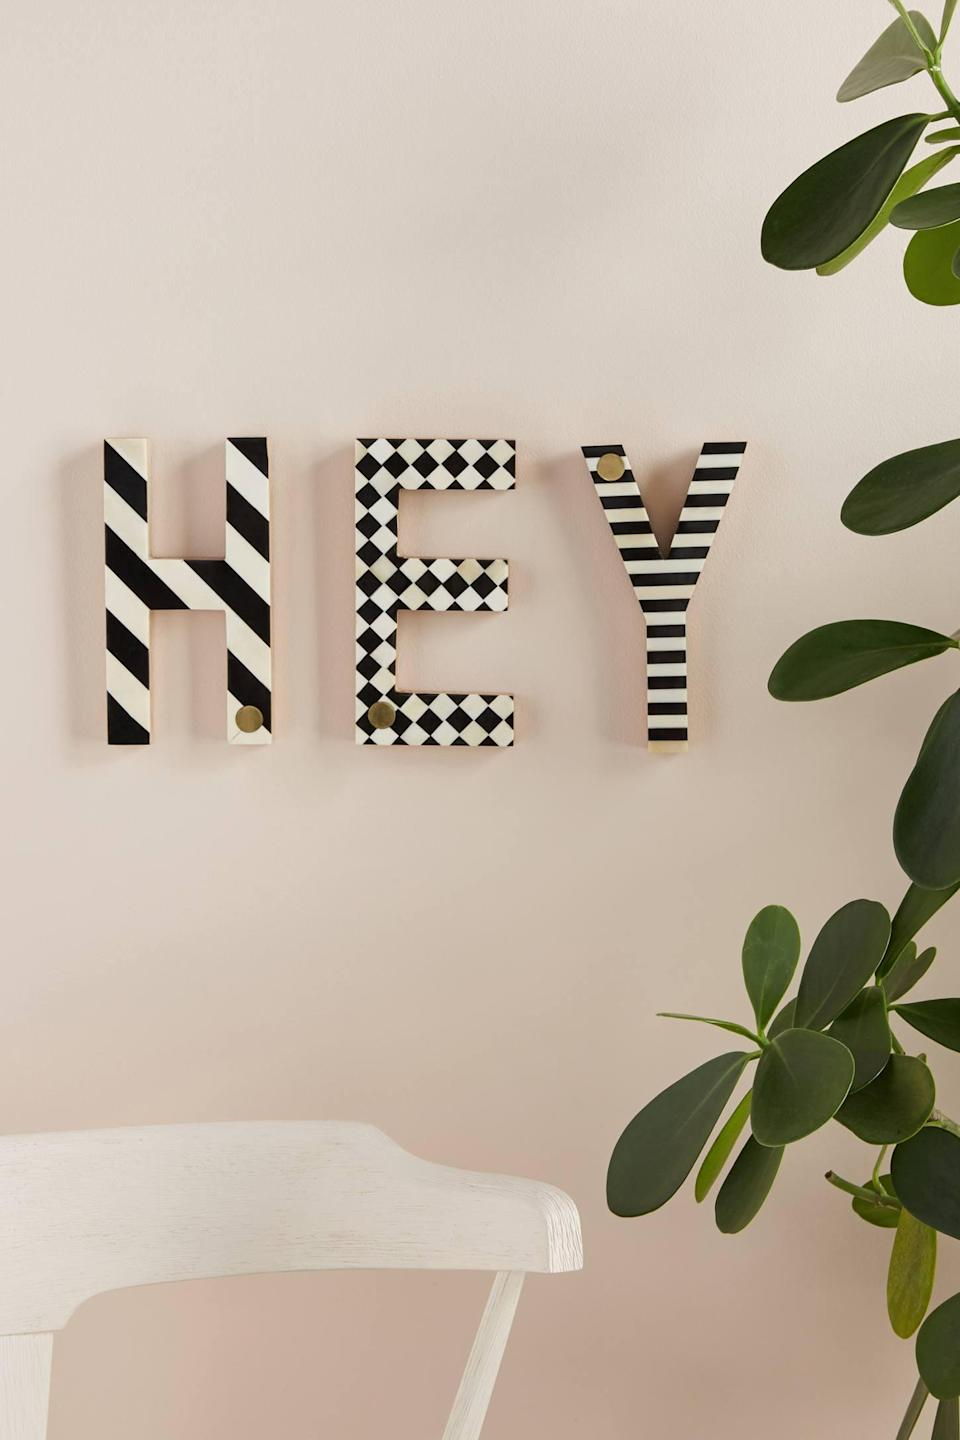 """<p>Make your own inspirational message with a few of these <a href=""""https://www.popsugar.com/buy/Darcy-Monogram-Letters-562170?p_name=Darcy%20Monogram%20Letters&retailer=anthropologie.com&pid=562170&price=24&evar1=casa%3Aus&evar9=47360872&evar98=https%3A%2F%2Fwww.popsugar.com%2Fhome%2Fphoto-gallery%2F47360872%2Fimage%2F47361108%2FDarcy-Monogram-Letter&list1=shopping%2Chome%20decor%2Cdecor%20shopping%2Chome%20shopping&prop13=api&pdata=1"""" class=""""link rapid-noclick-resp"""" rel=""""nofollow noopener"""" target=""""_blank"""" data-ylk=""""slk:Darcy Monogram Letters"""">Darcy Monogram Letters</a> ($24).</p>"""